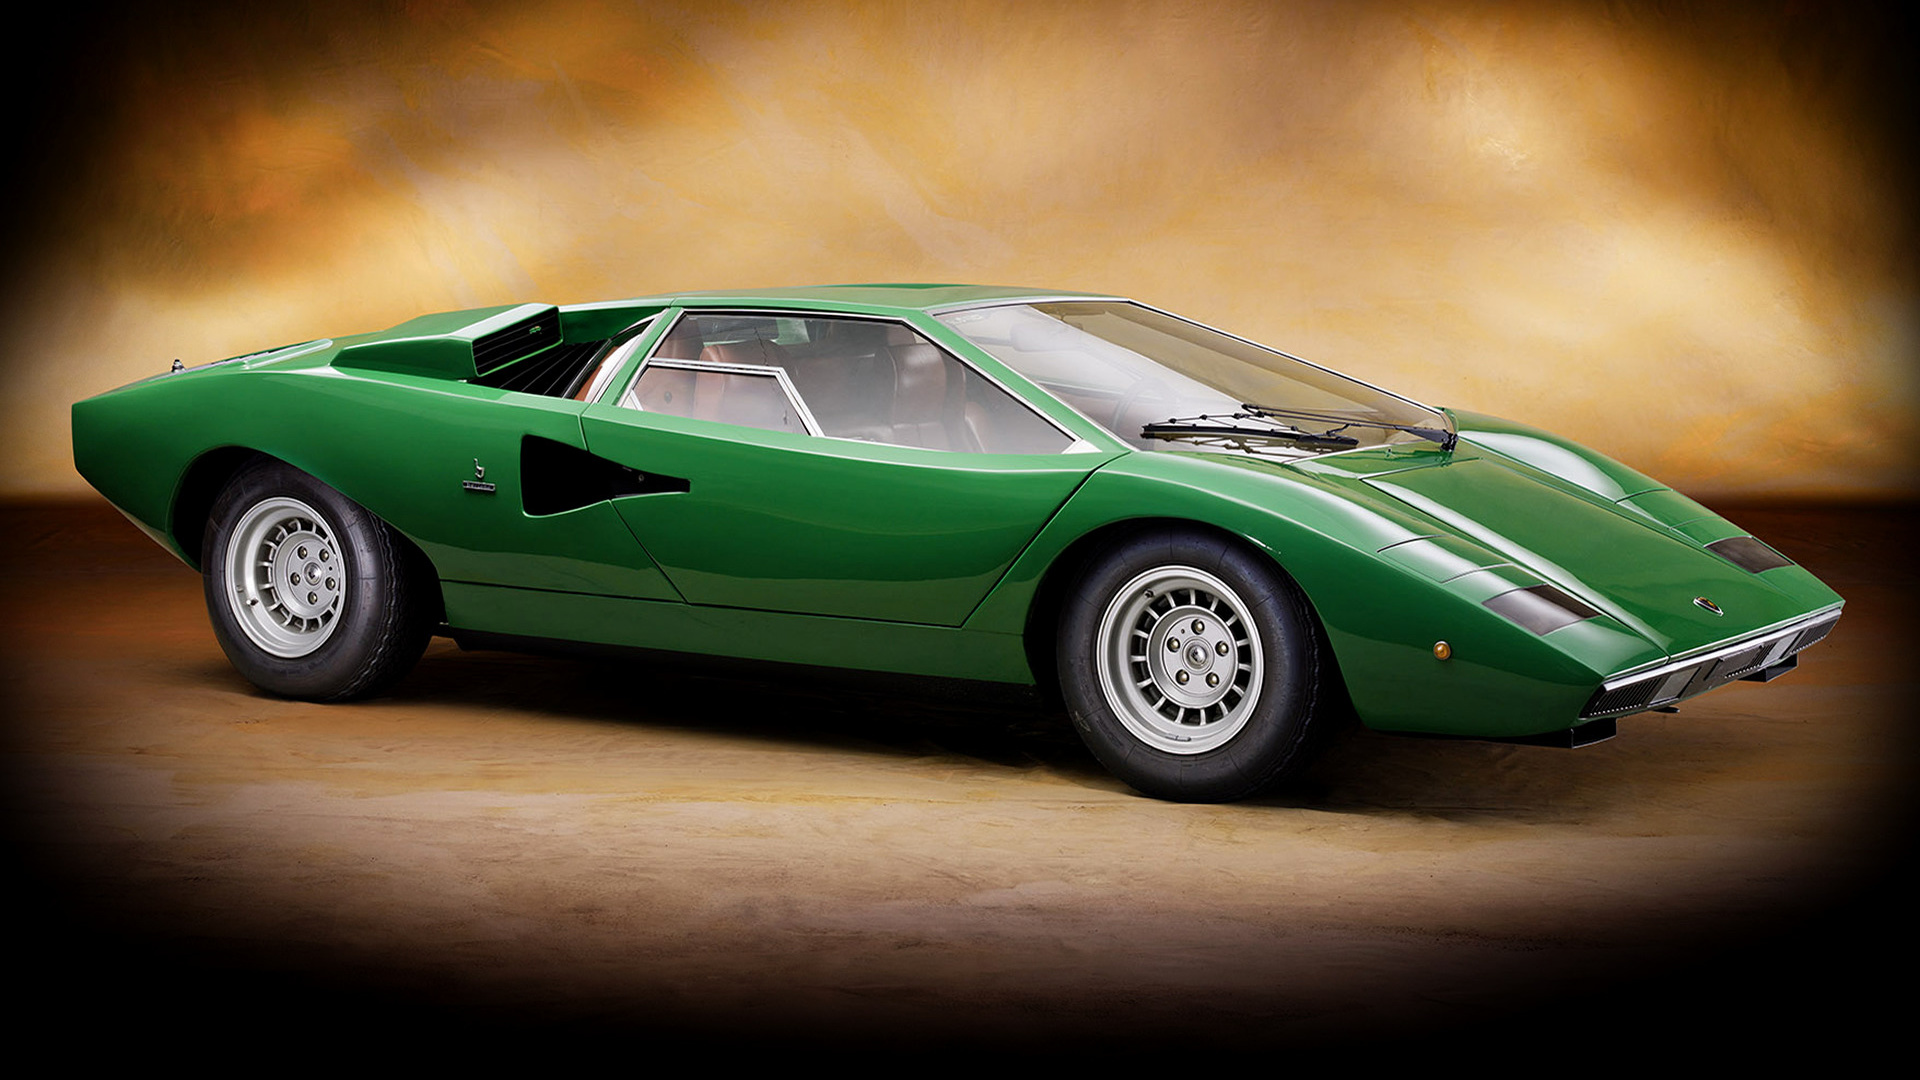 Lamborghini Countach Lp400 Prototype 1973 Wallpapers And